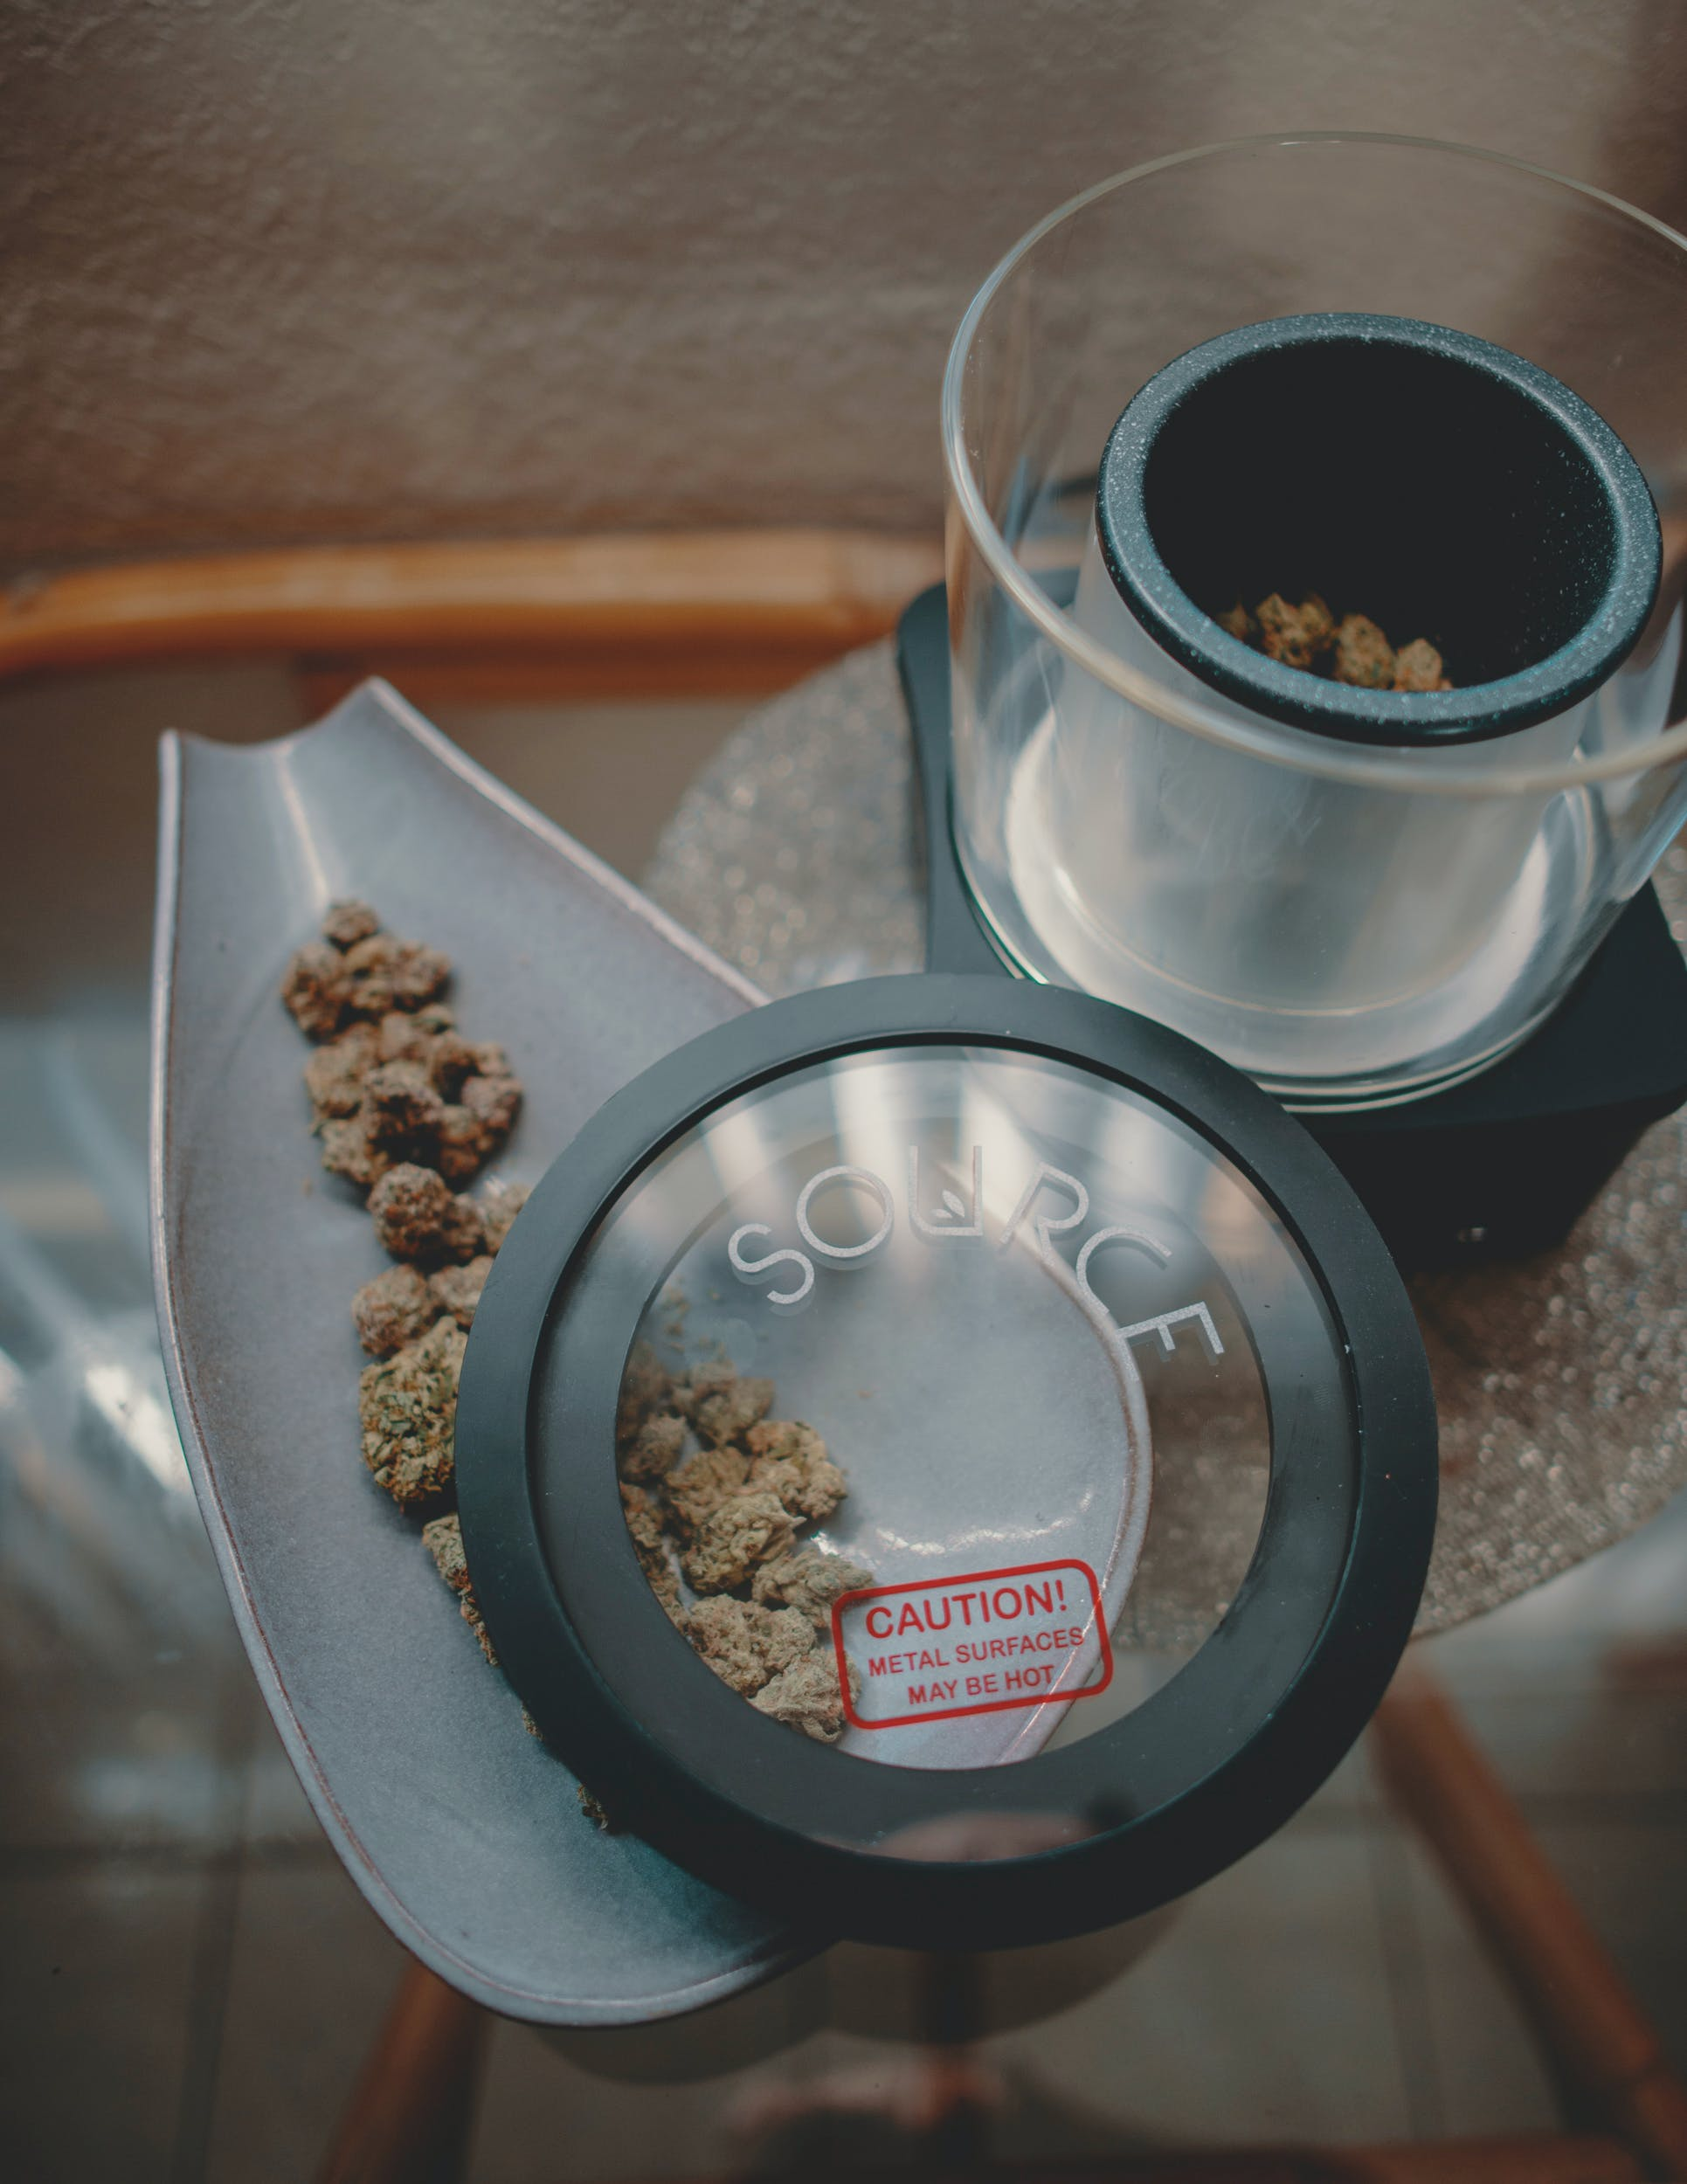 Best Weed Gadgets 100 These Are The Best Weed Gadgets For Cannabis Enthusiasts Everywhere